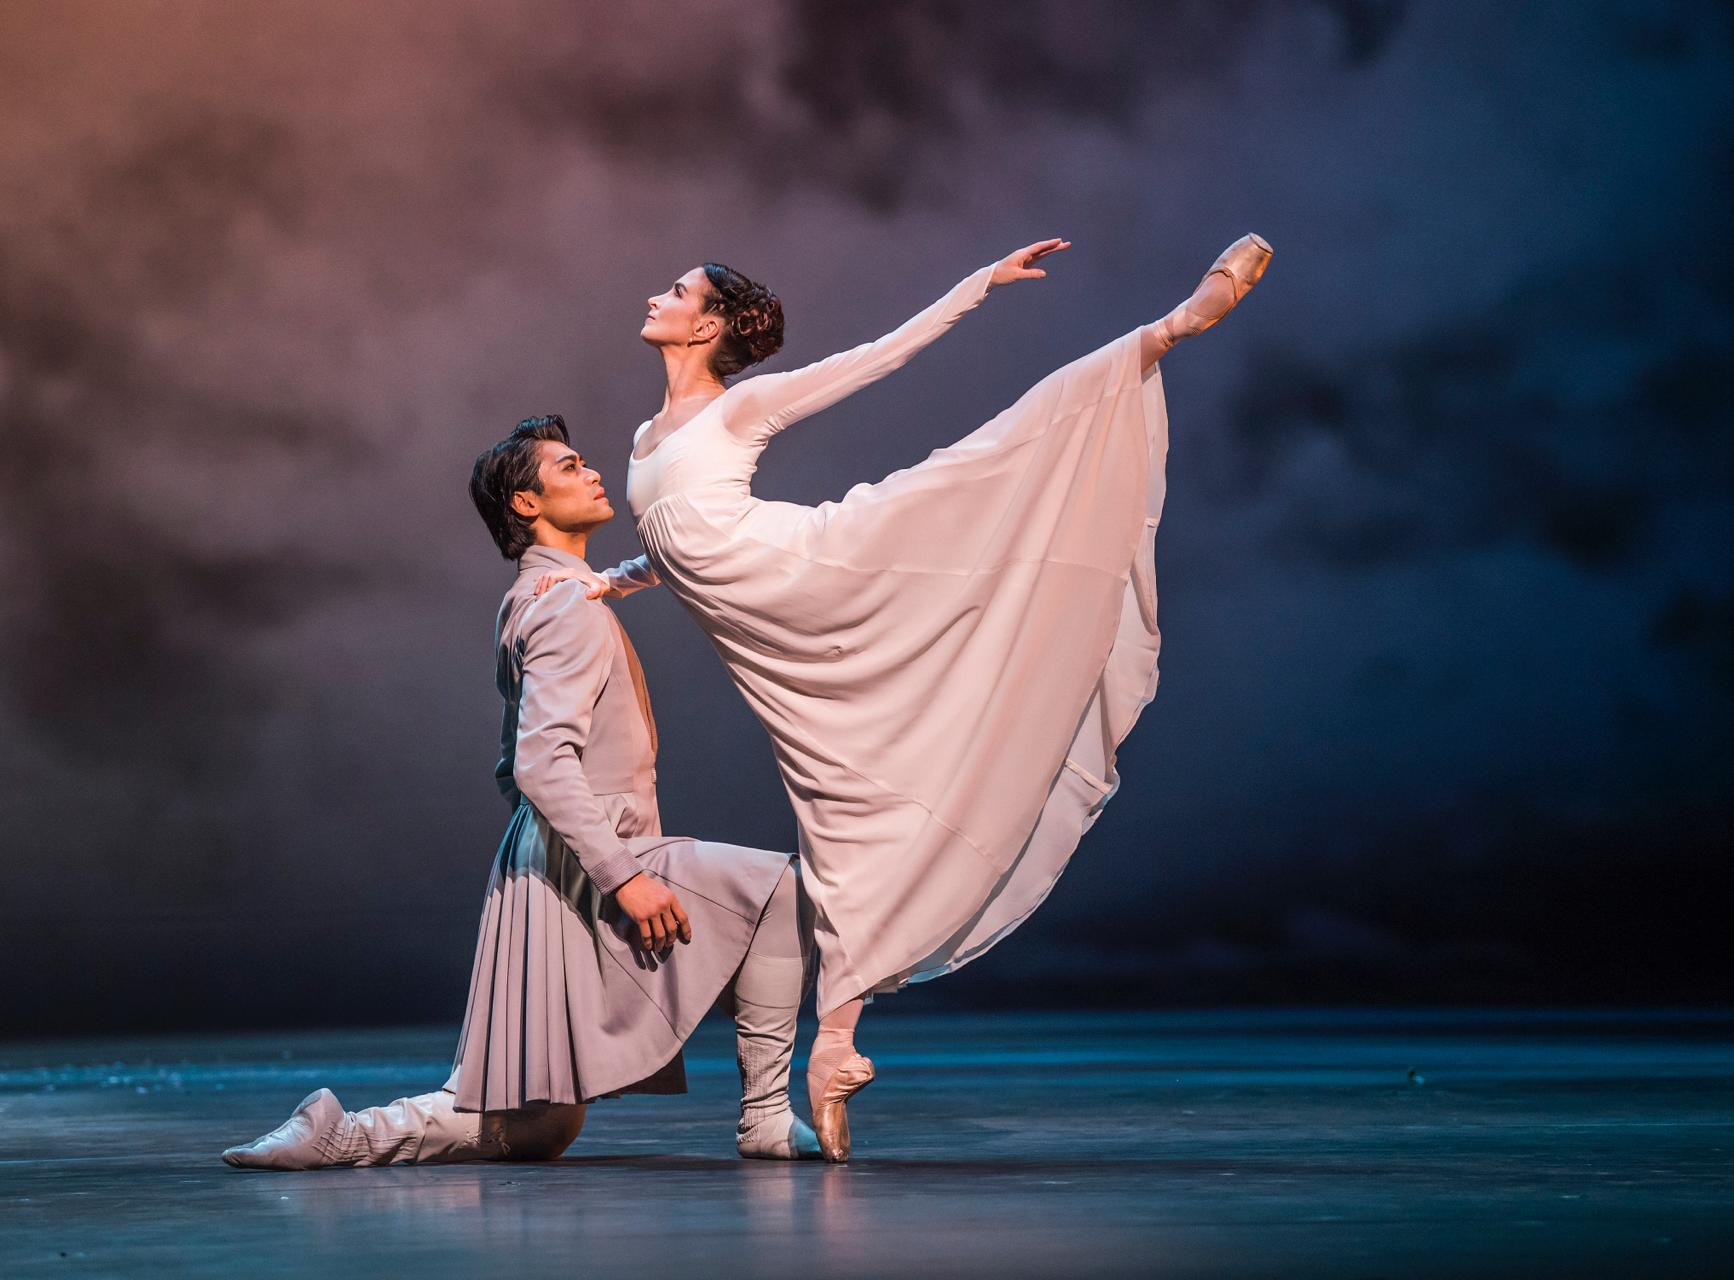 The Winter's Tale. Ryoichi Hirano as Leontes and Lauren Cuthbertson as Hermione. © ROH, 2018. by Tristram Kenton